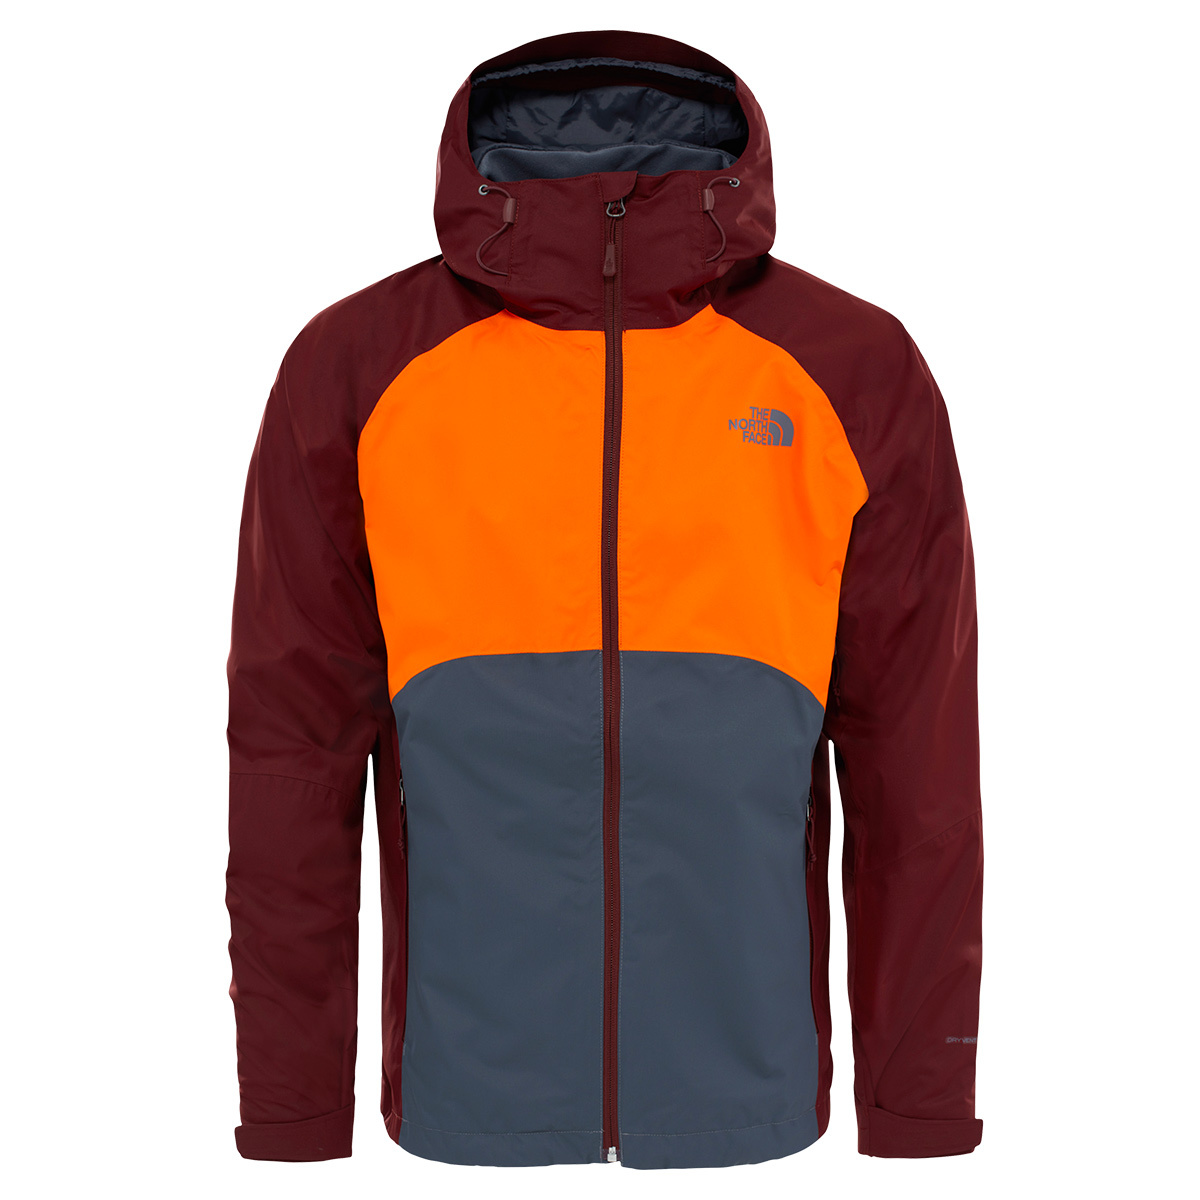 Sequence North The Face Jacket Qsport q0xY8w4w